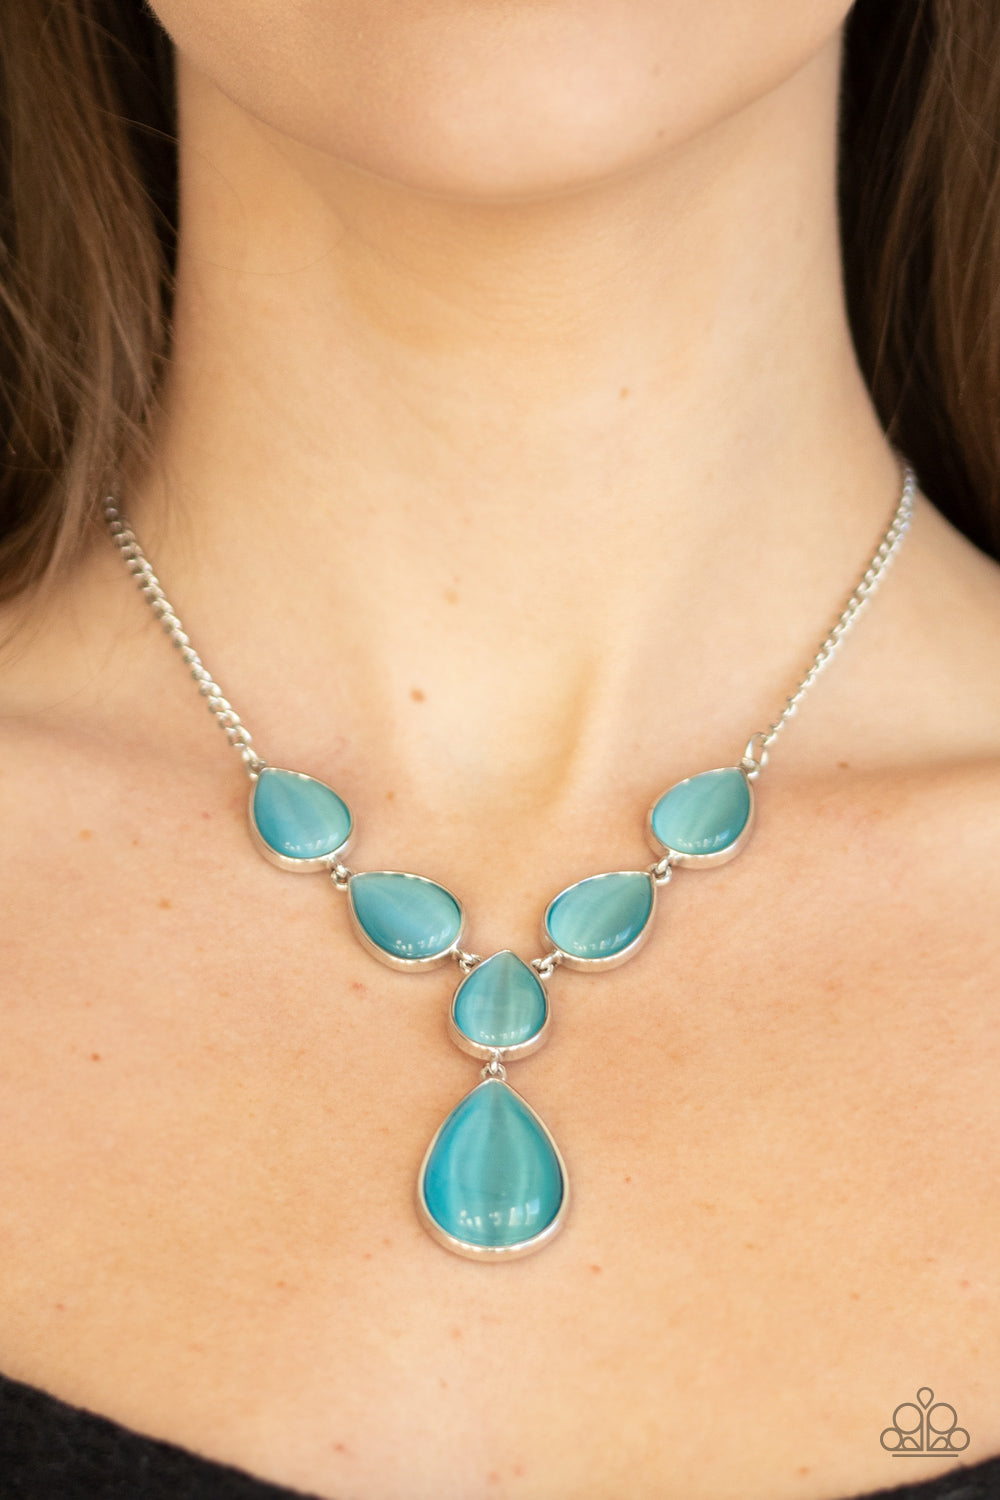 Paparazzi Jewelry & Accessories - Dewy Decadence - Blue Necklace. Bling By Titia Boutique